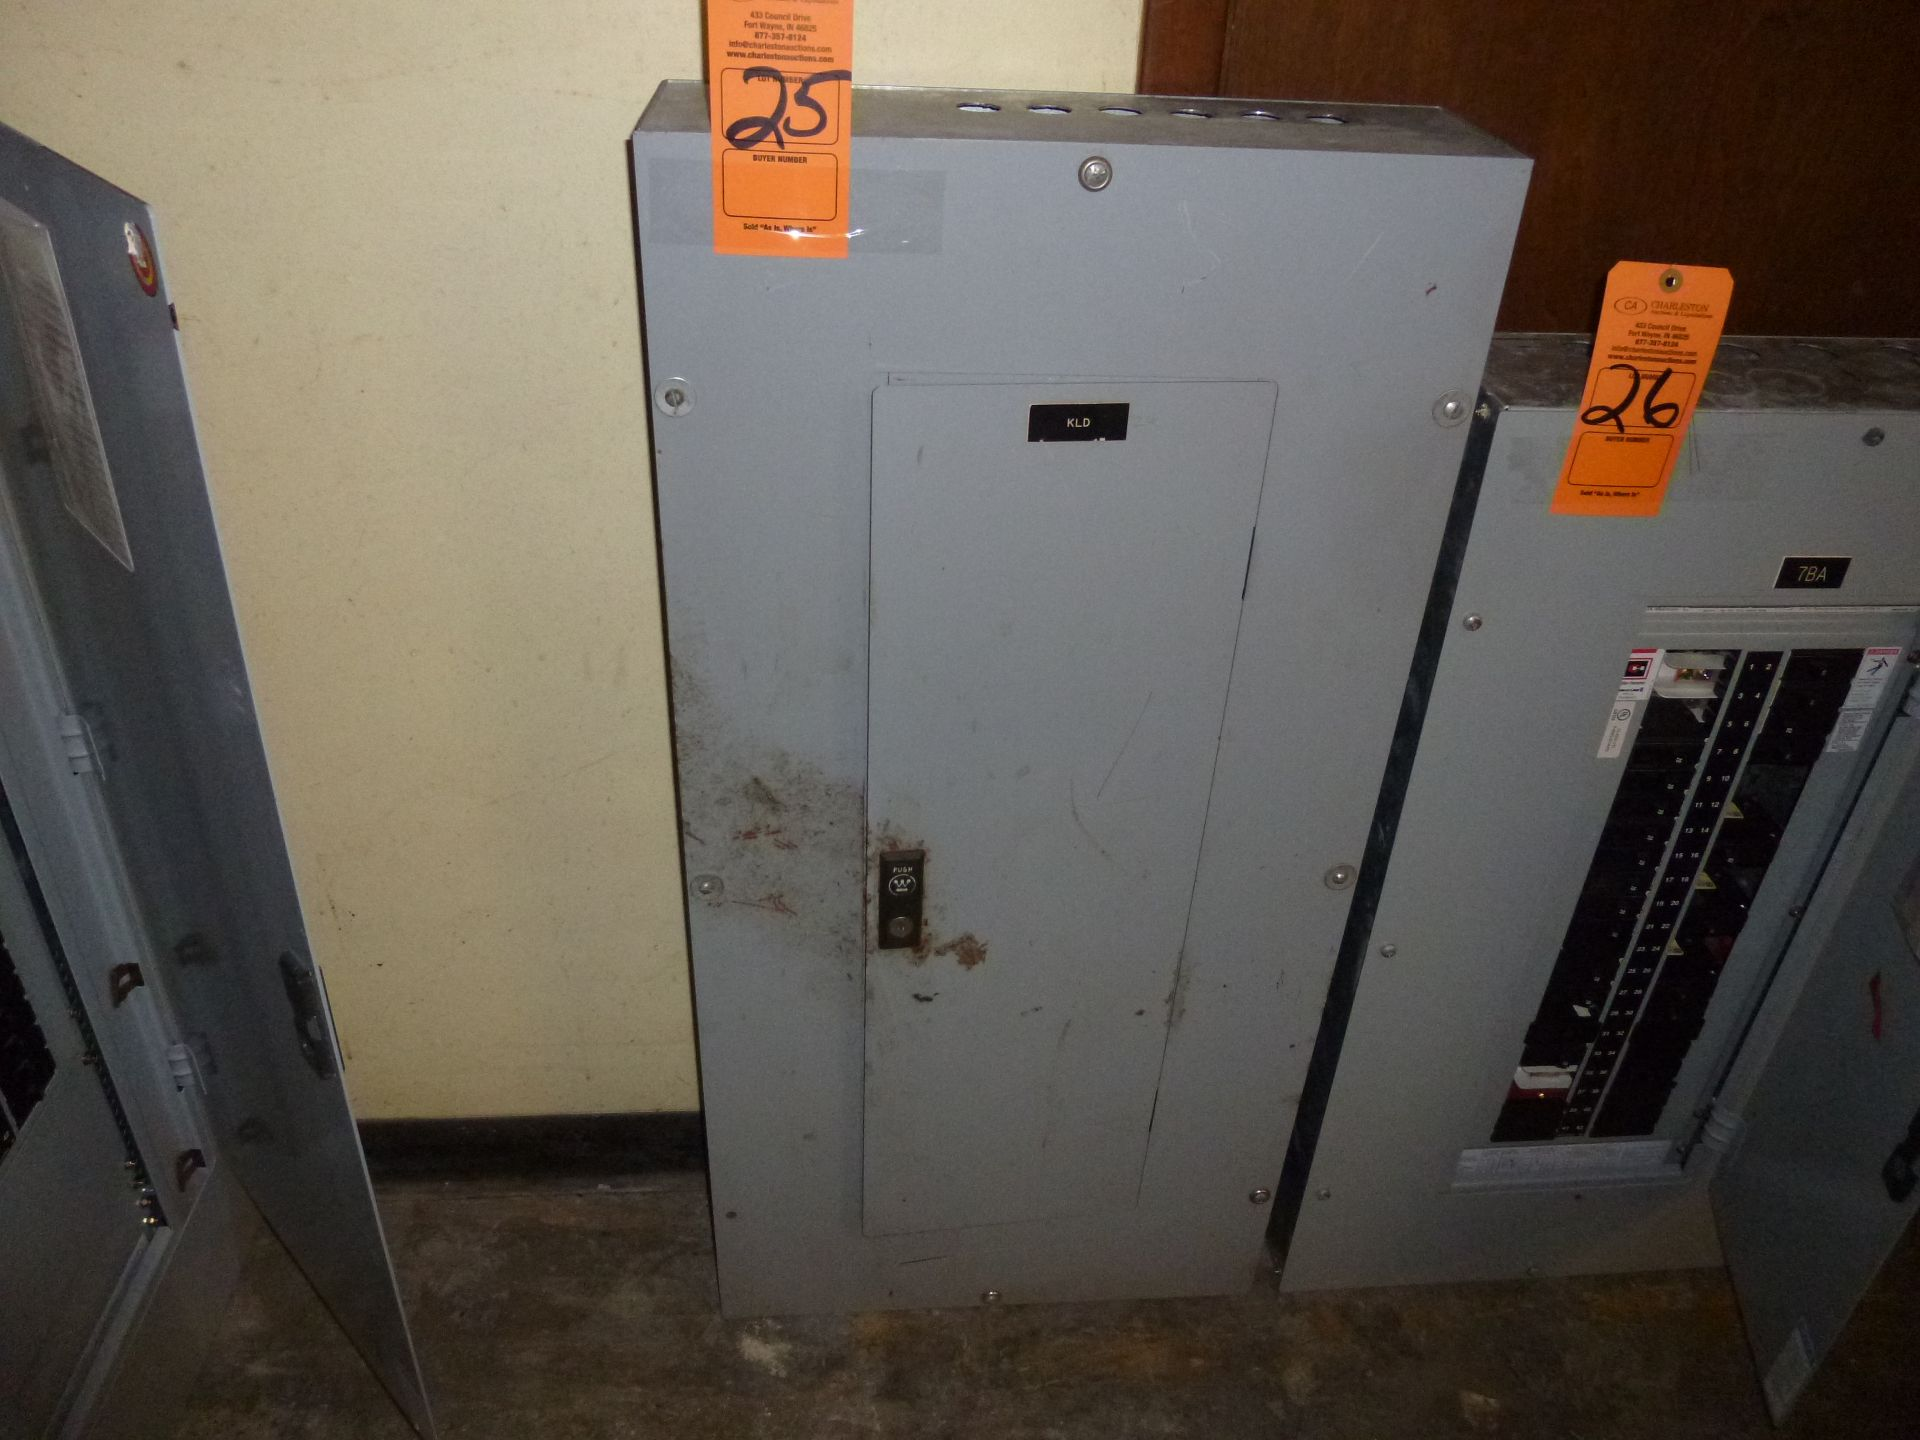 Lot 25 - Westinghouse Pow-R-Line C PRL1 225amp box, 208/120v, 3 phase, 4 wire includes all breakers as